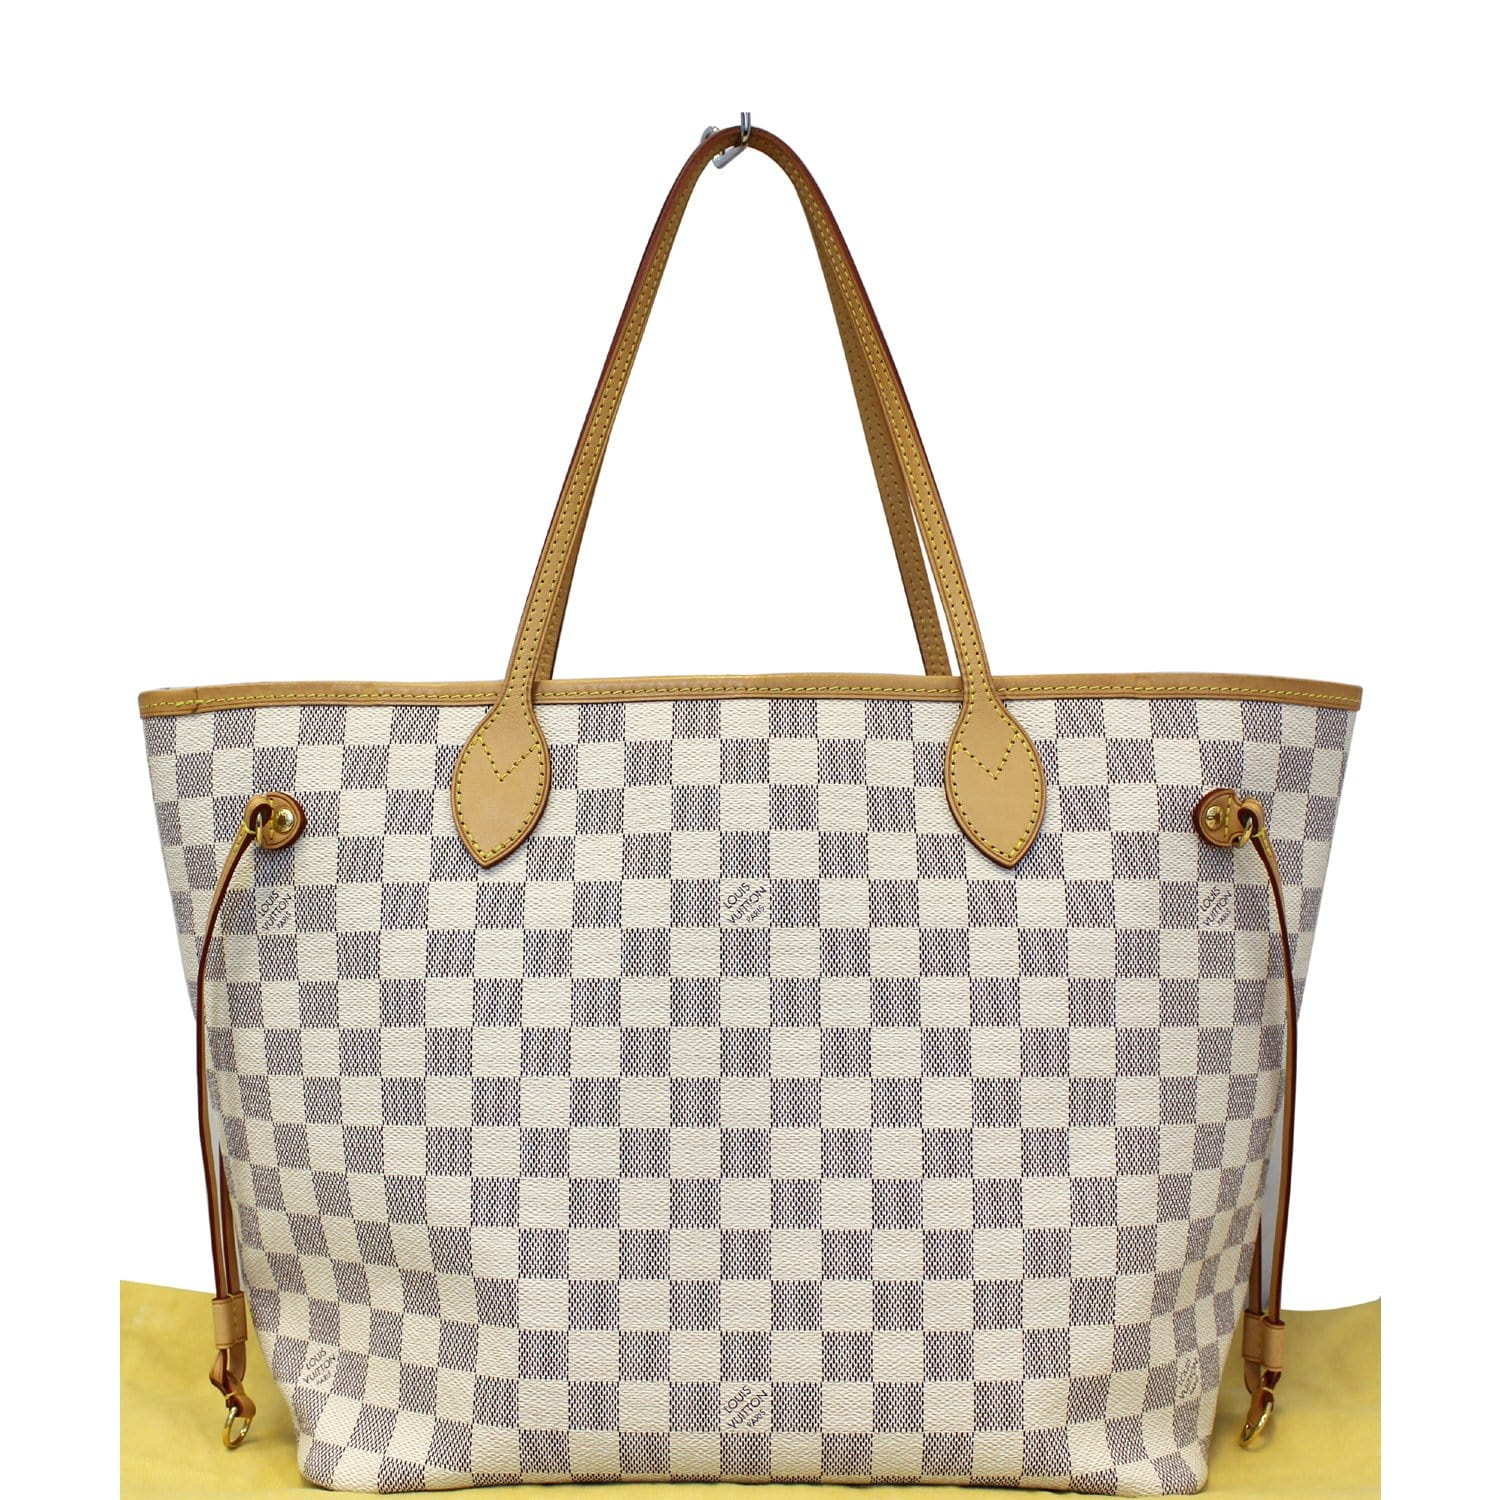 cf0078c6eb98 LOUIS VUITTON Neverfull MM Damier Azur Tote Shoulder Bag-US